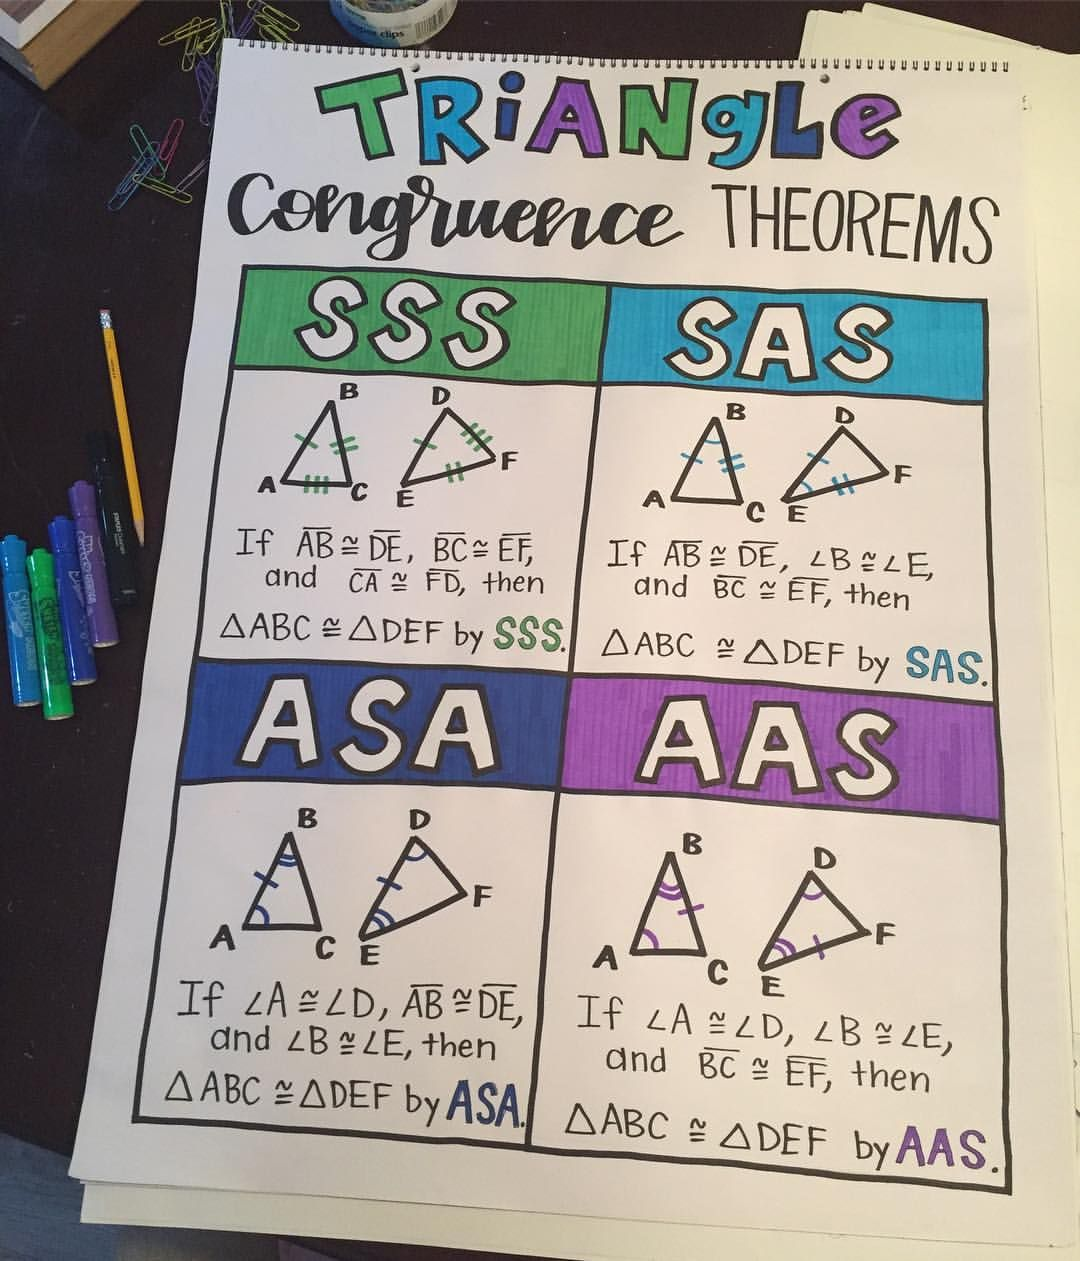 hight resolution of I've got so much SAS 💁🏼🔼 Triangle Congruence Theorems anchor chart for  my #GEOMETRY friends 💚?…   Geometry high school